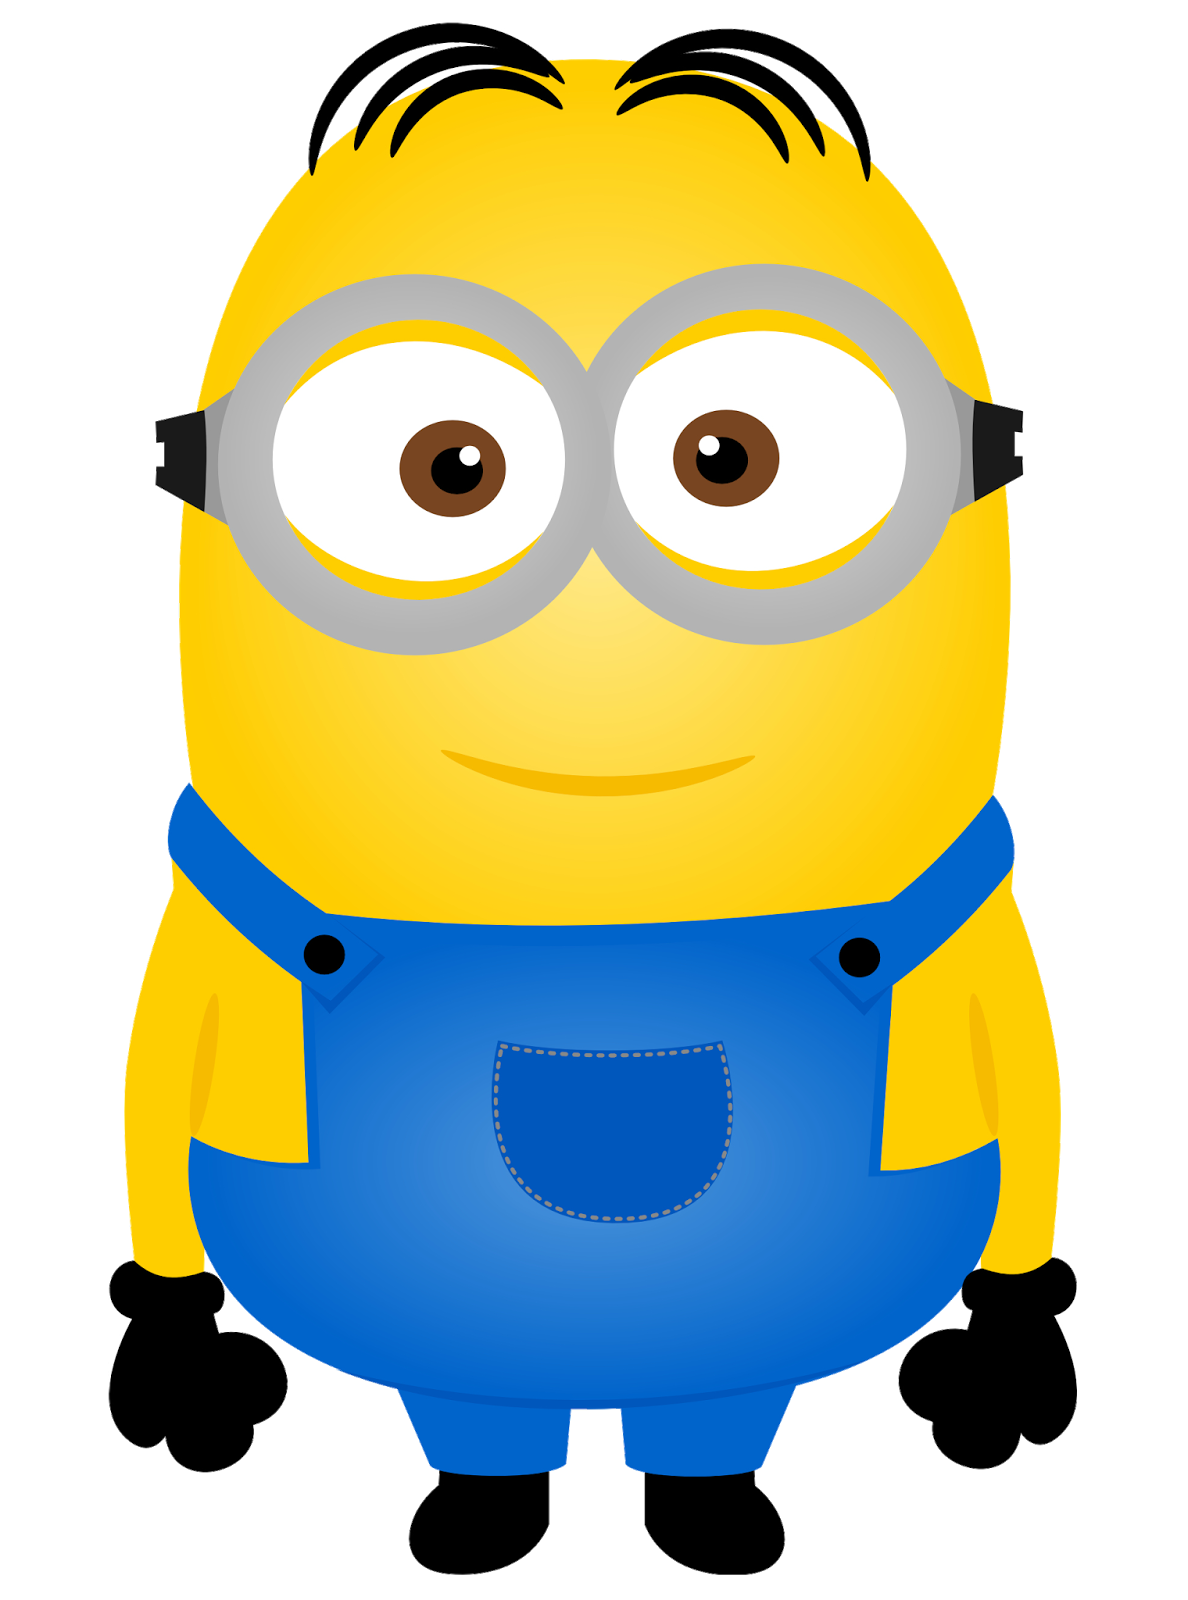 Minion cupcake clipart png royalty free Free Minion Cupcake Cliparts, Download Free Clip Art, Free ... png royalty free